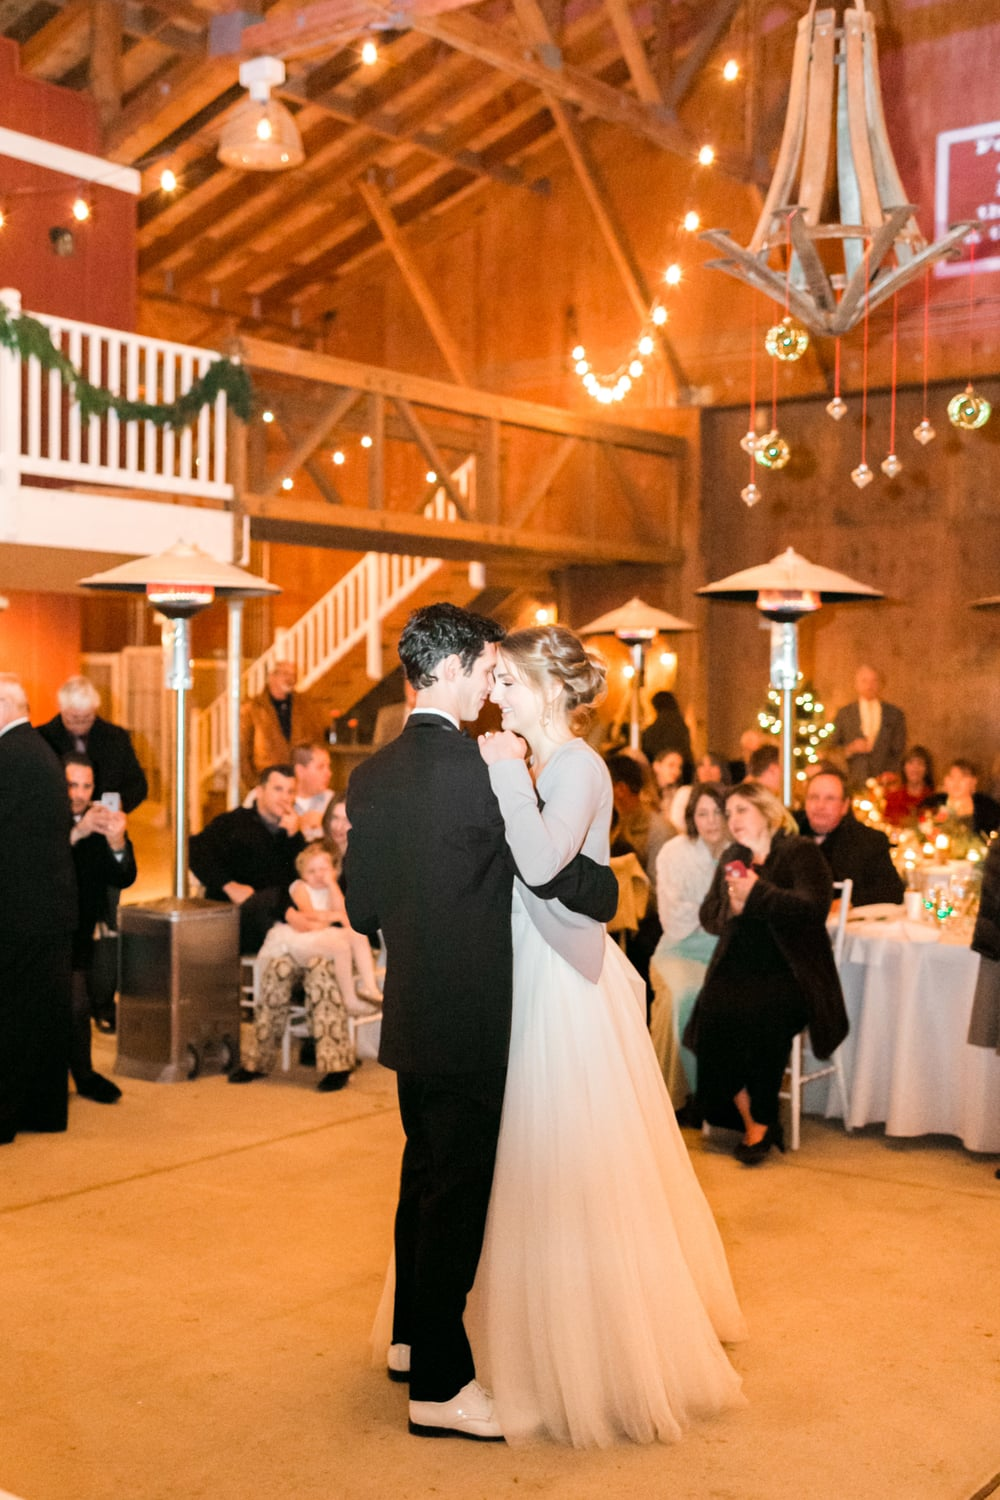 Natalie_Schutt_Photography_Winter_Wedding_San_Luis_Obispo-216.jpg